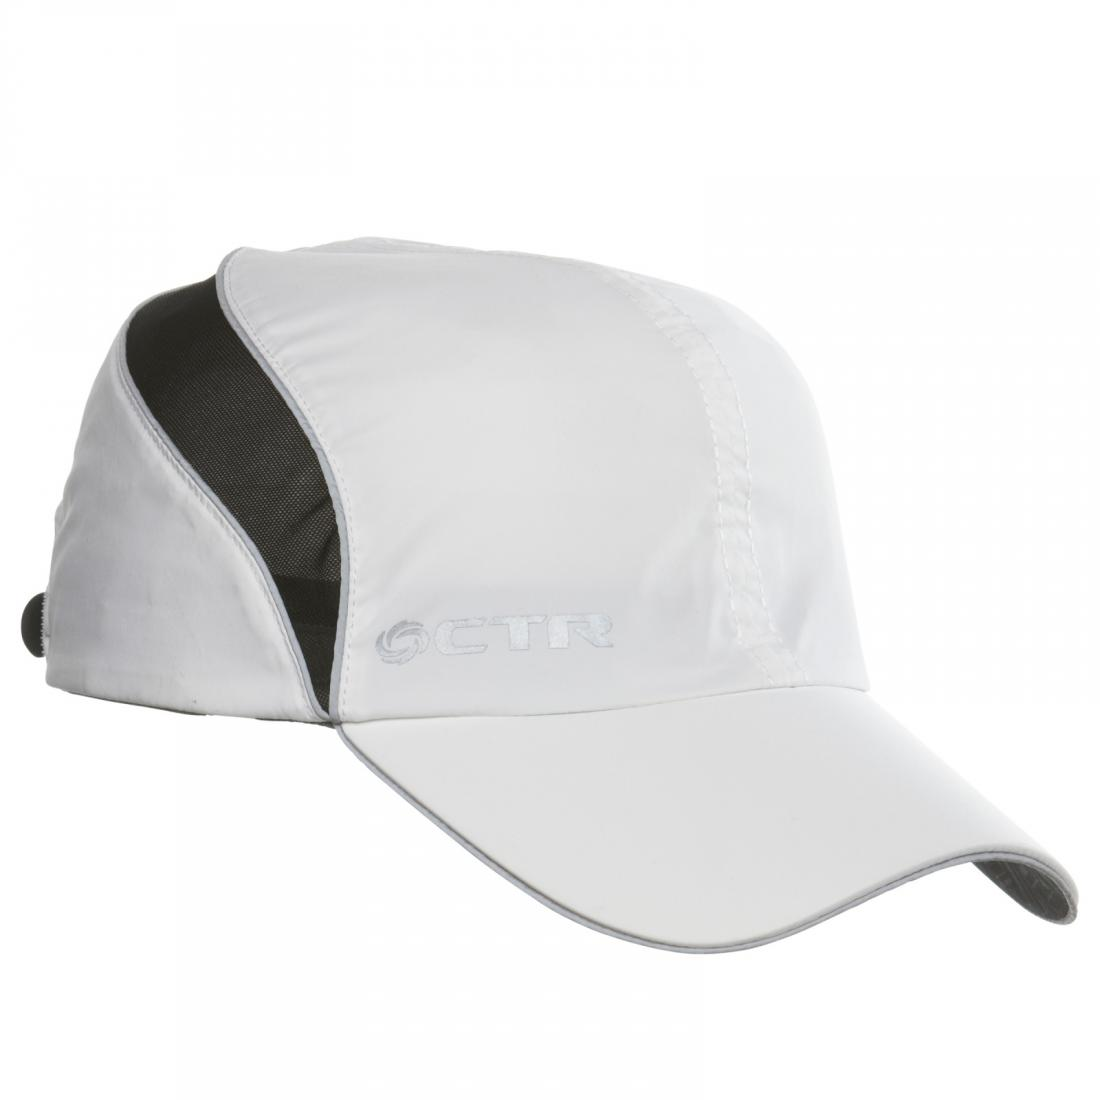 Chaos Кепка Chaos Chase Daybreaker Run Cap